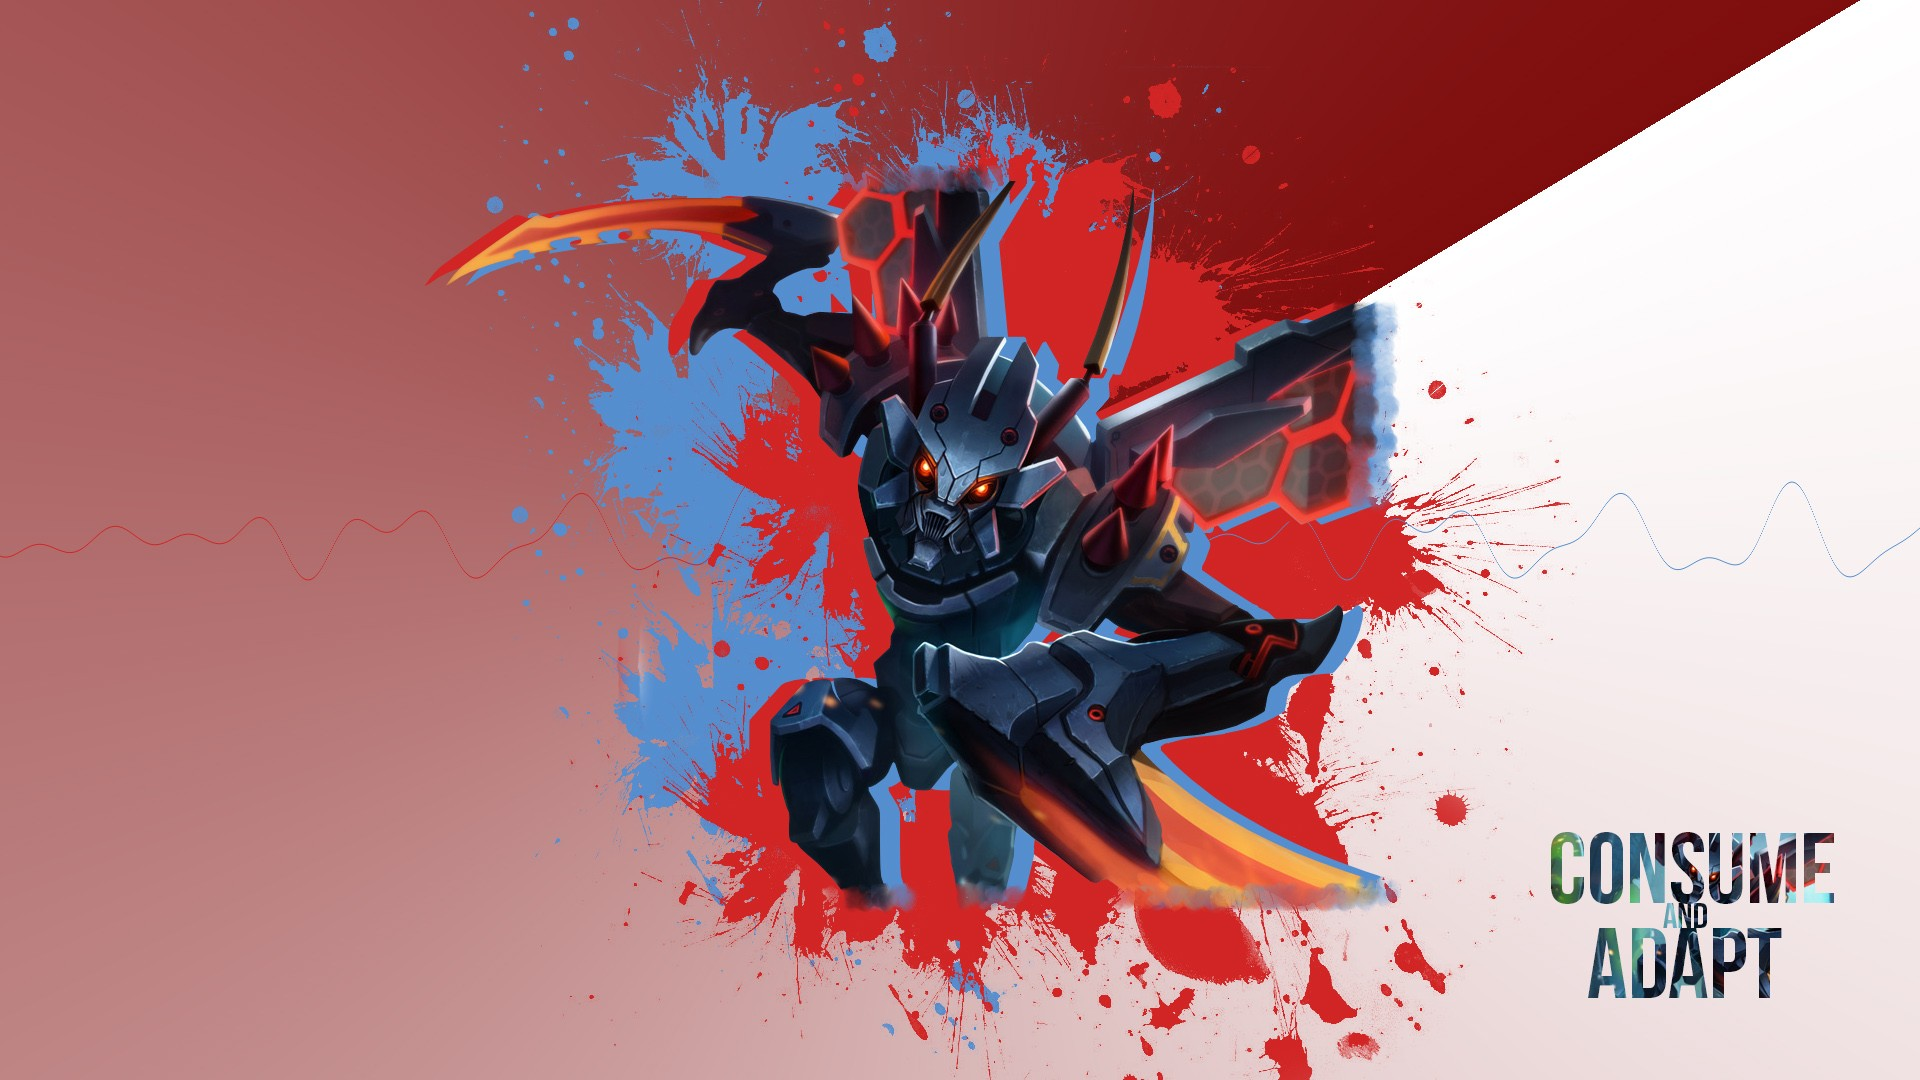 Mecha Kha'Zix by UKISShadyVaati HD Wallpaper Fan Art Artwork League of Legends lol